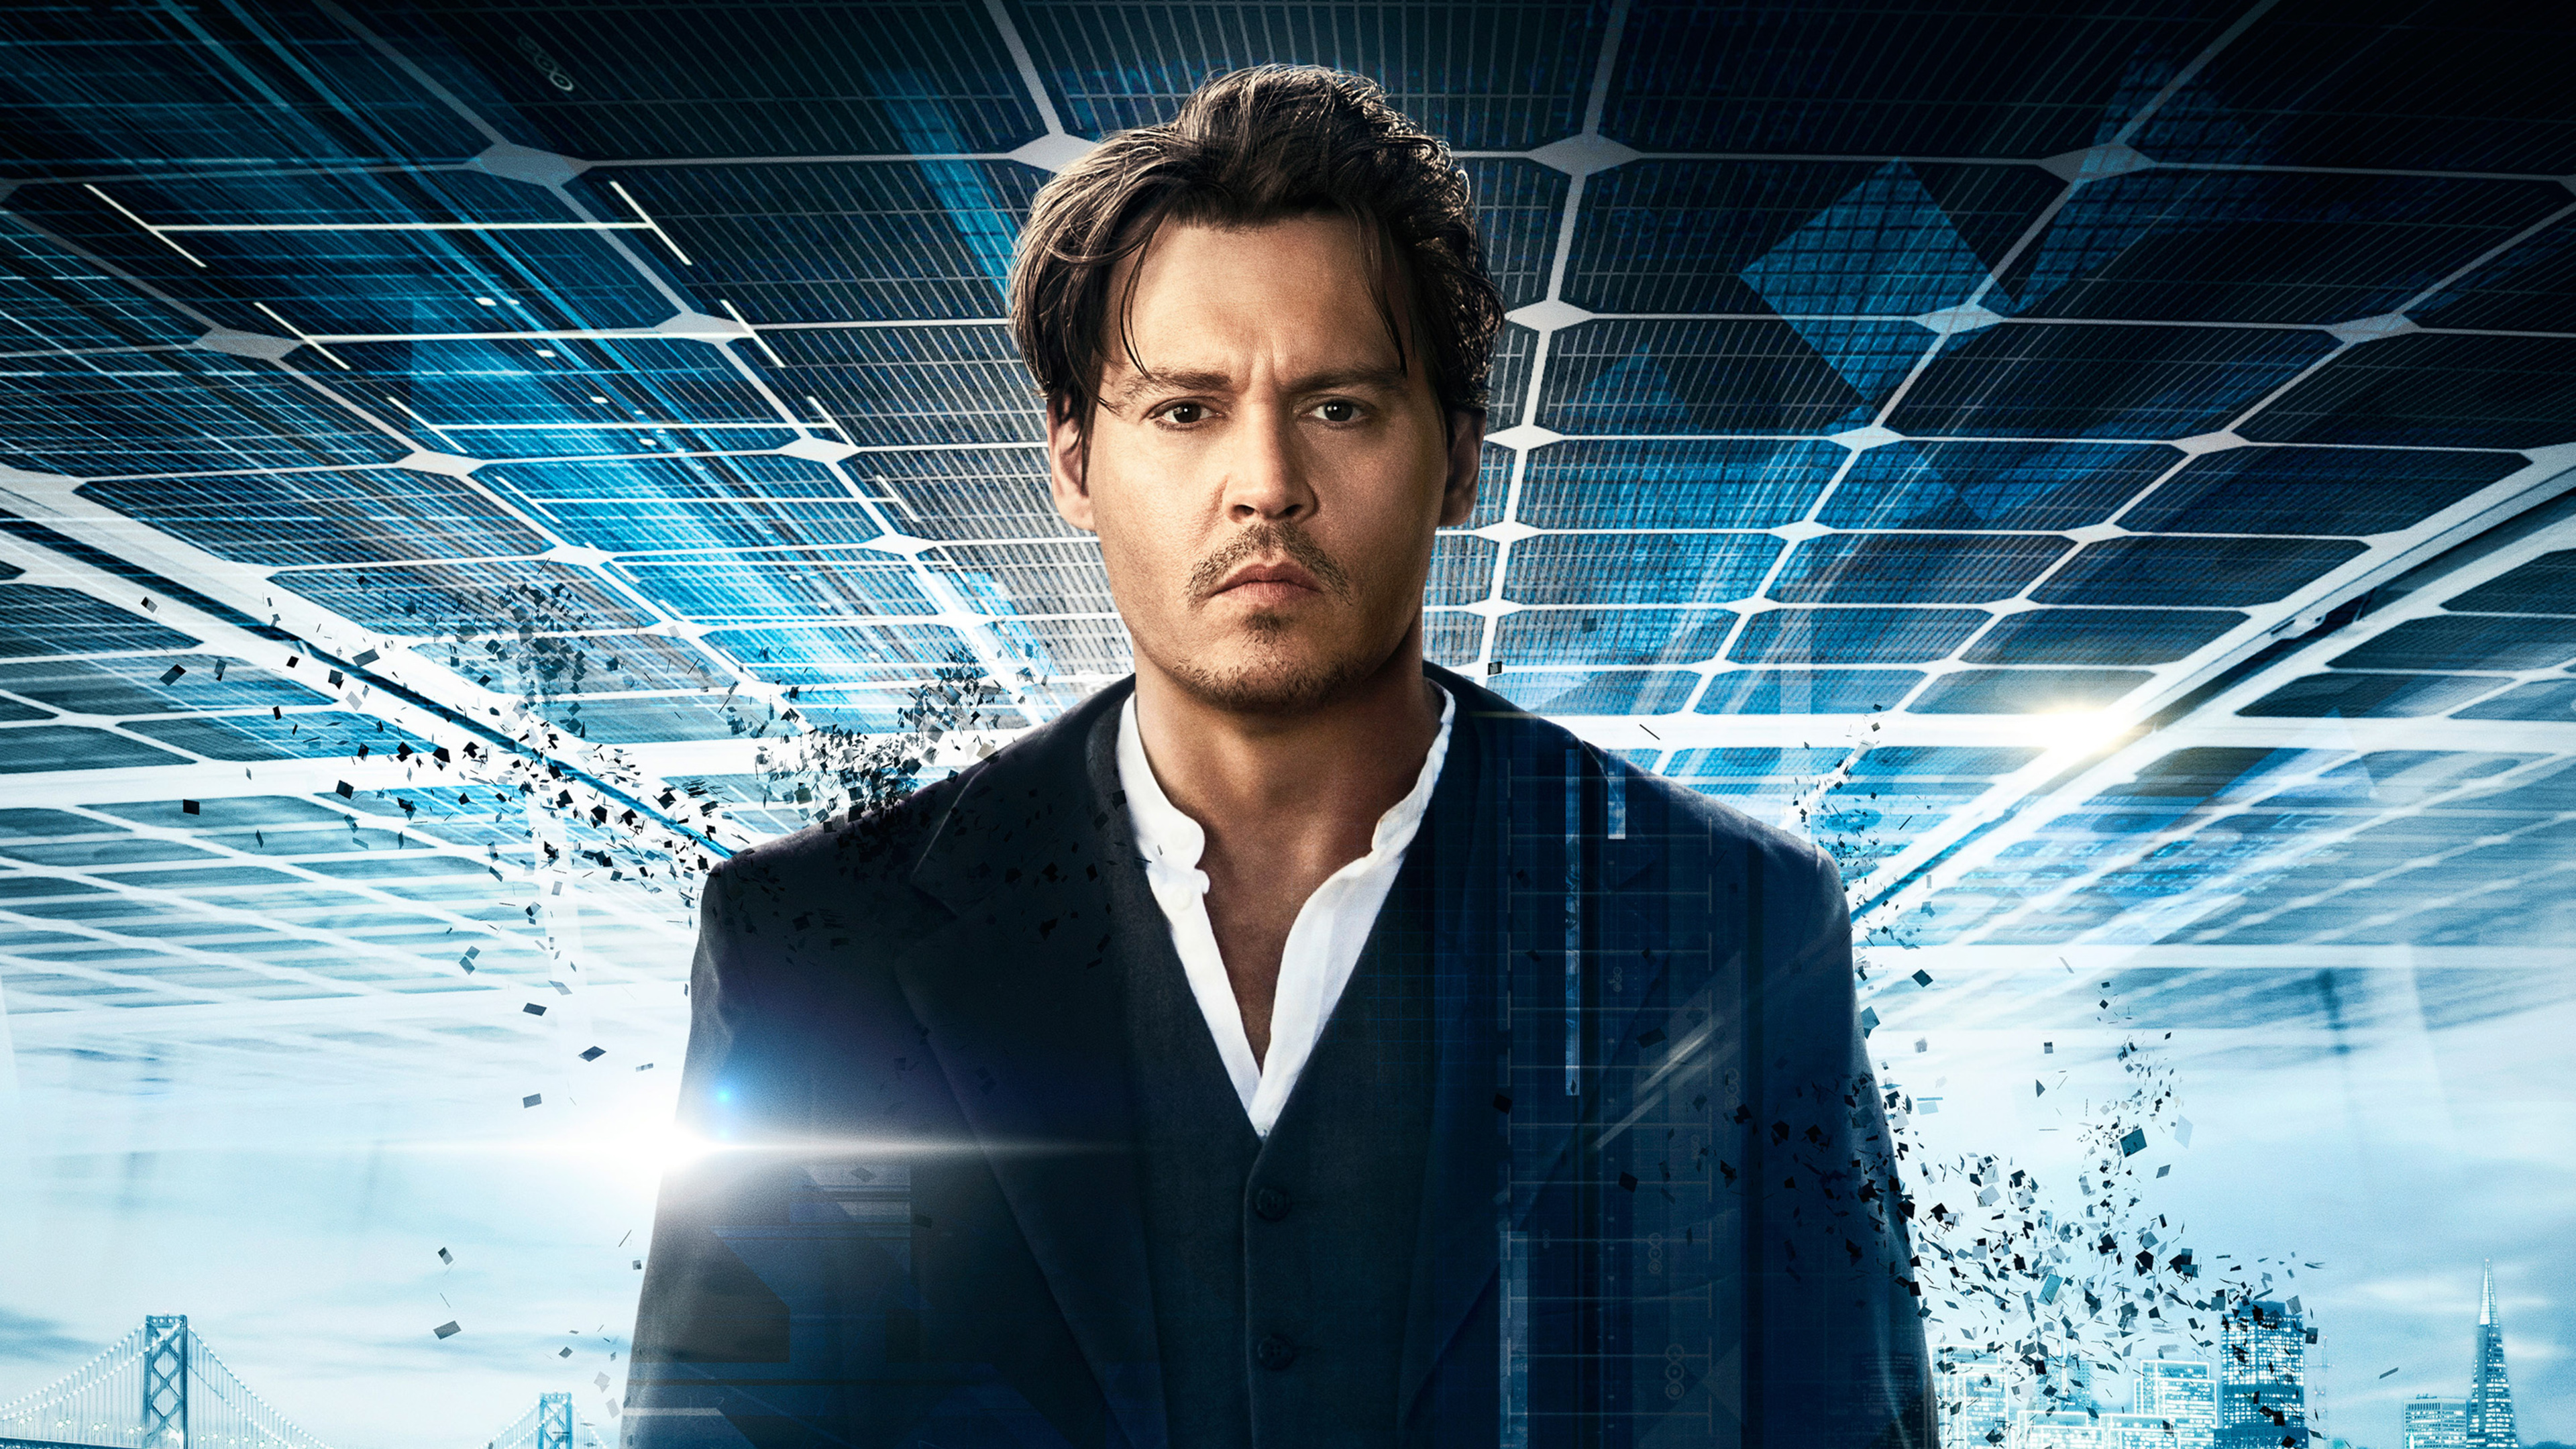 Johnny Depp In Transcendence, HD Movies, 4k Wallpapers ...